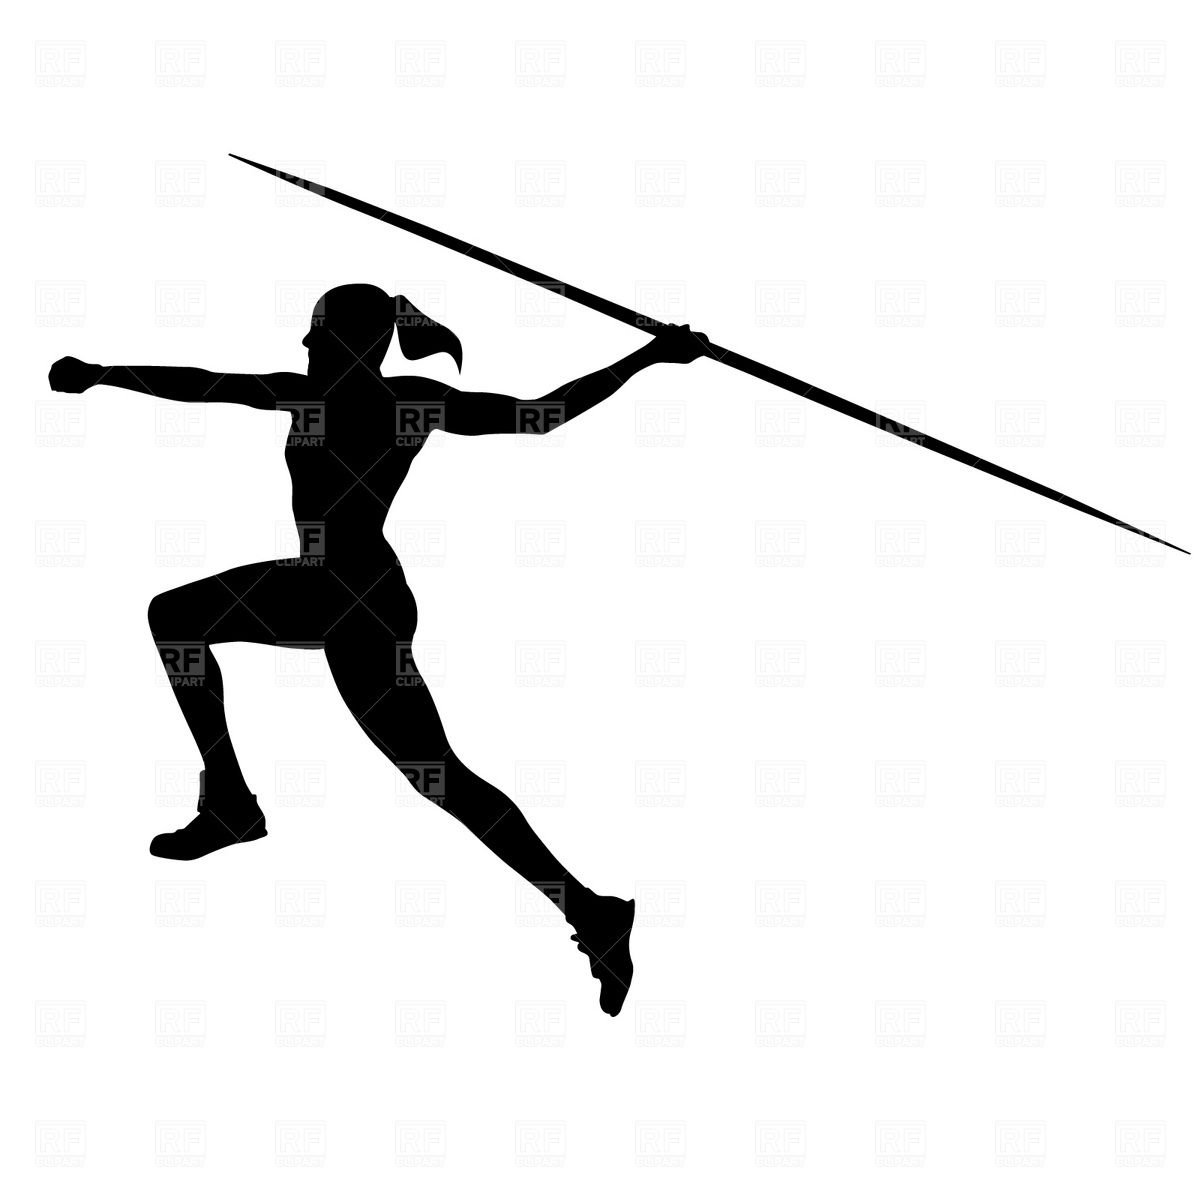 hight resolution of woman throwing javelin clipart catalog sport and leisure women s javelin download